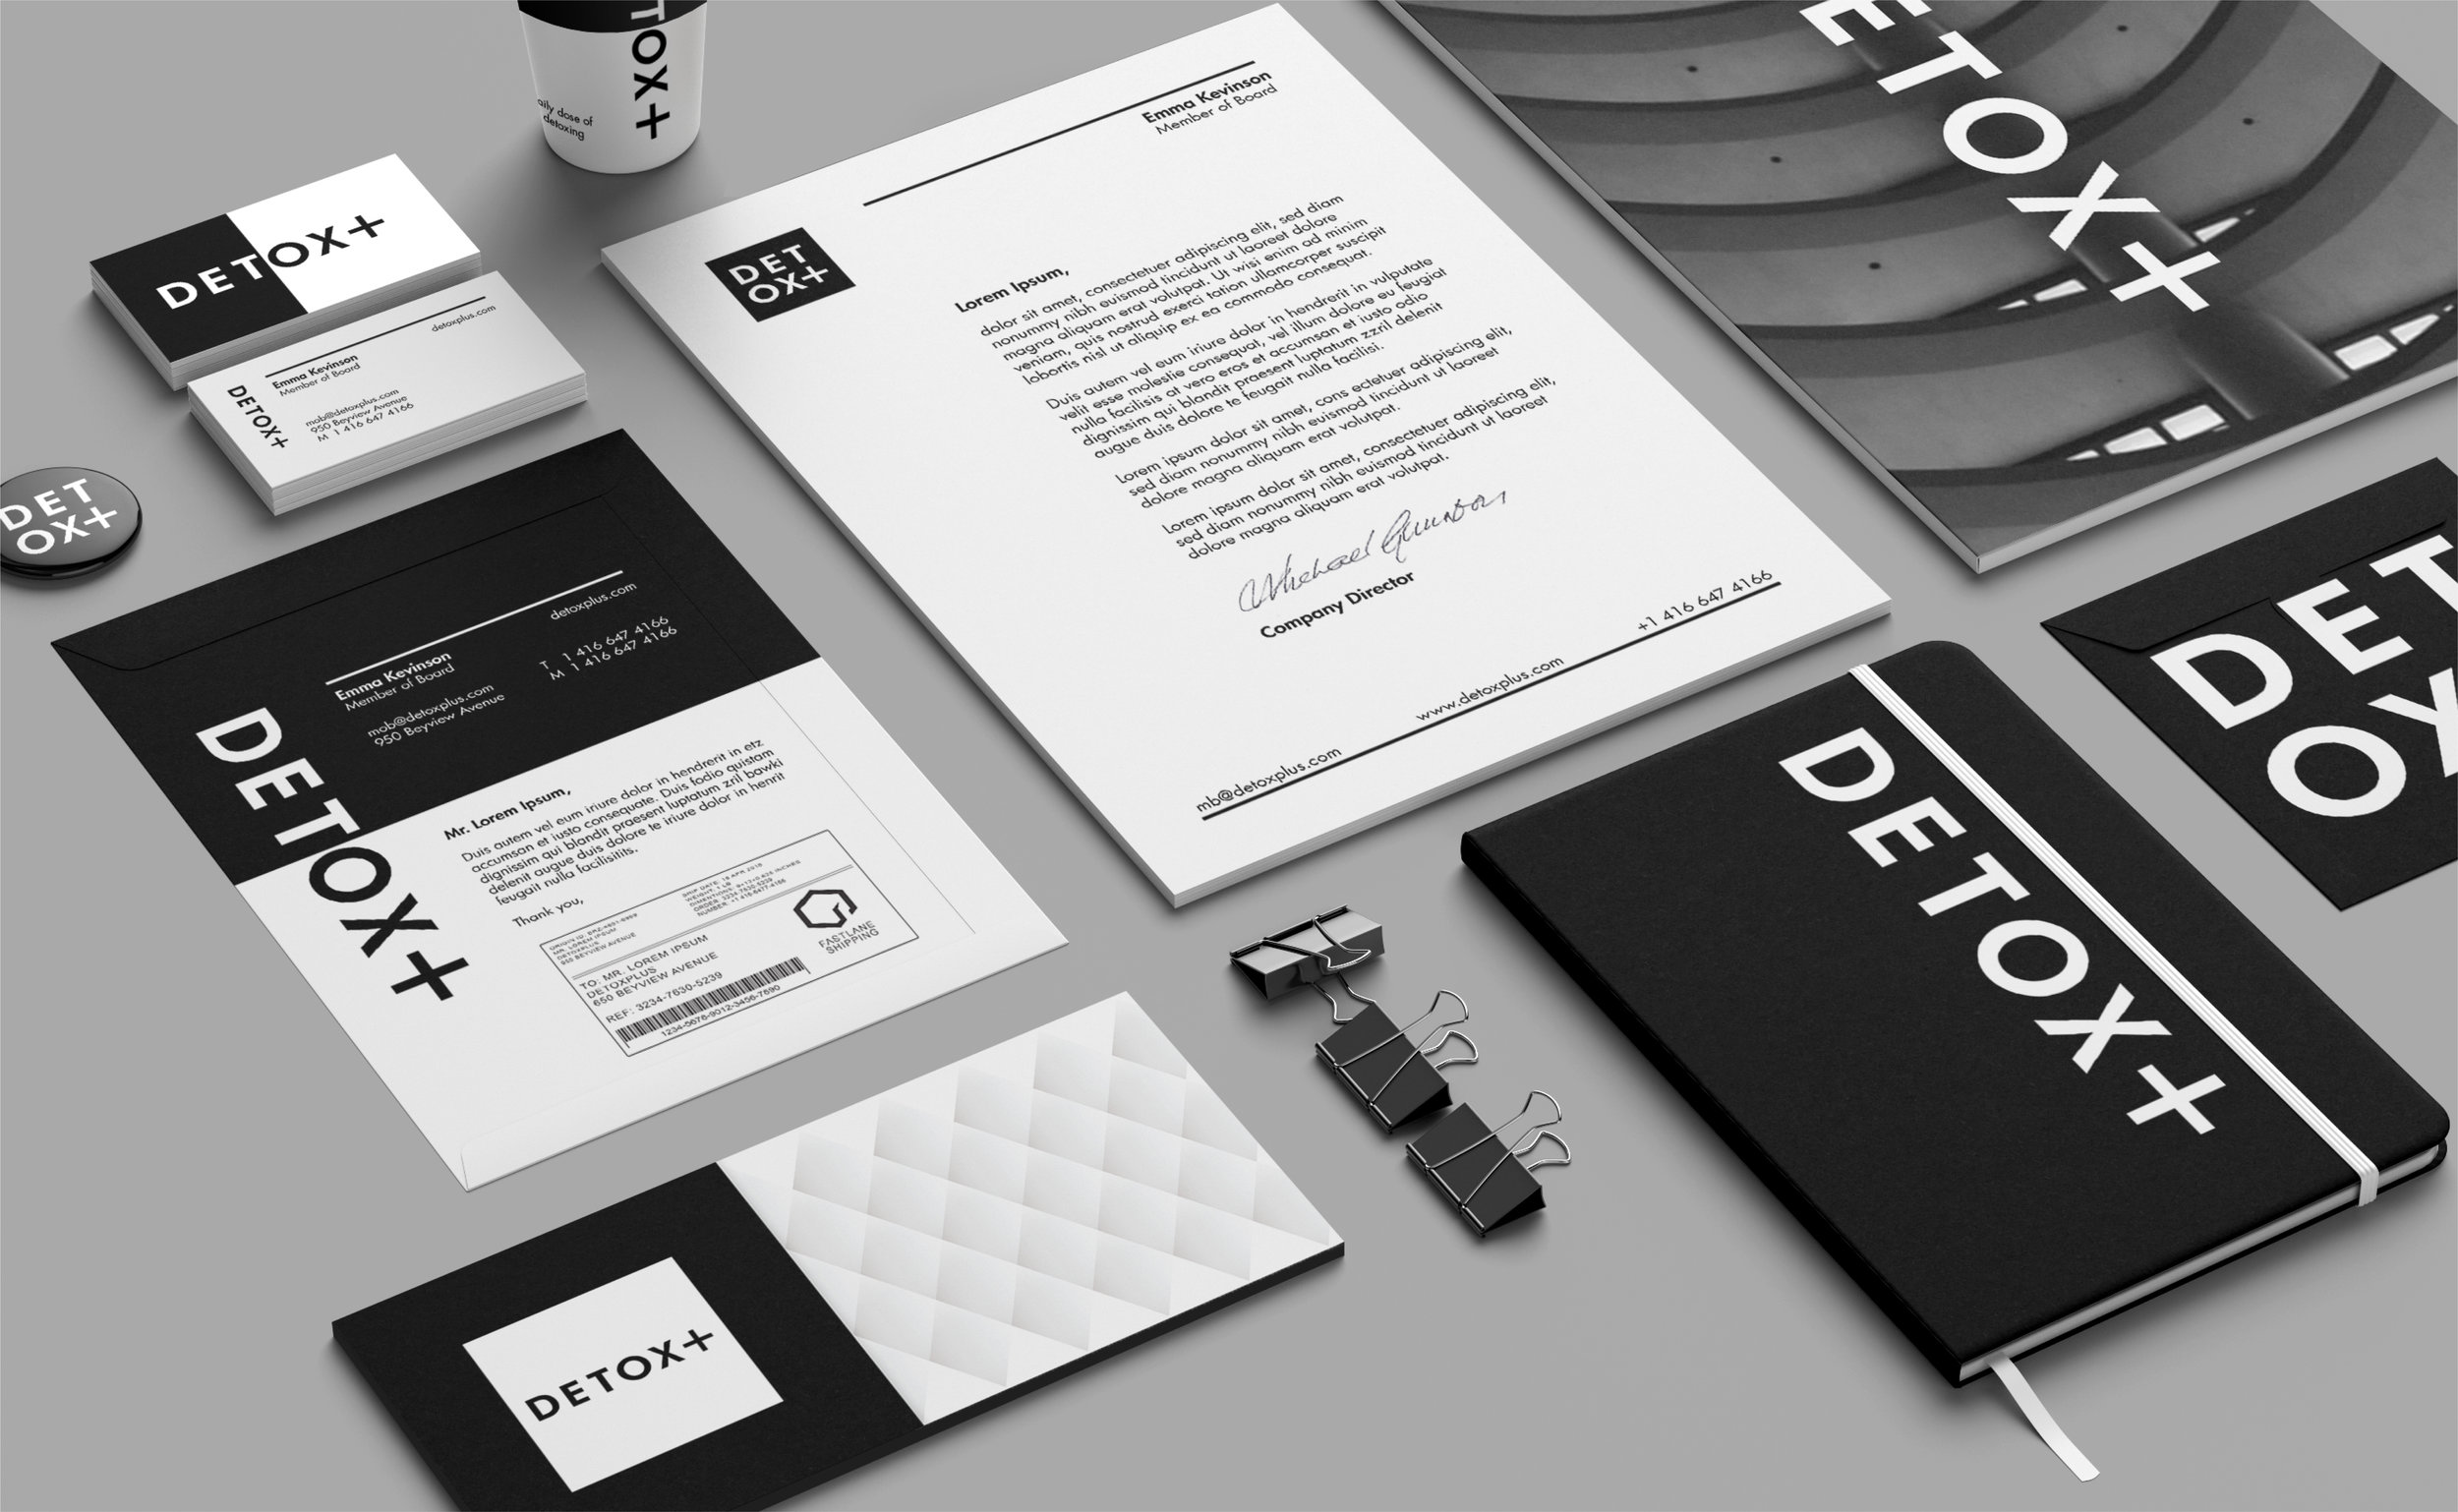 Detox Plus Packaging – Stationary design one